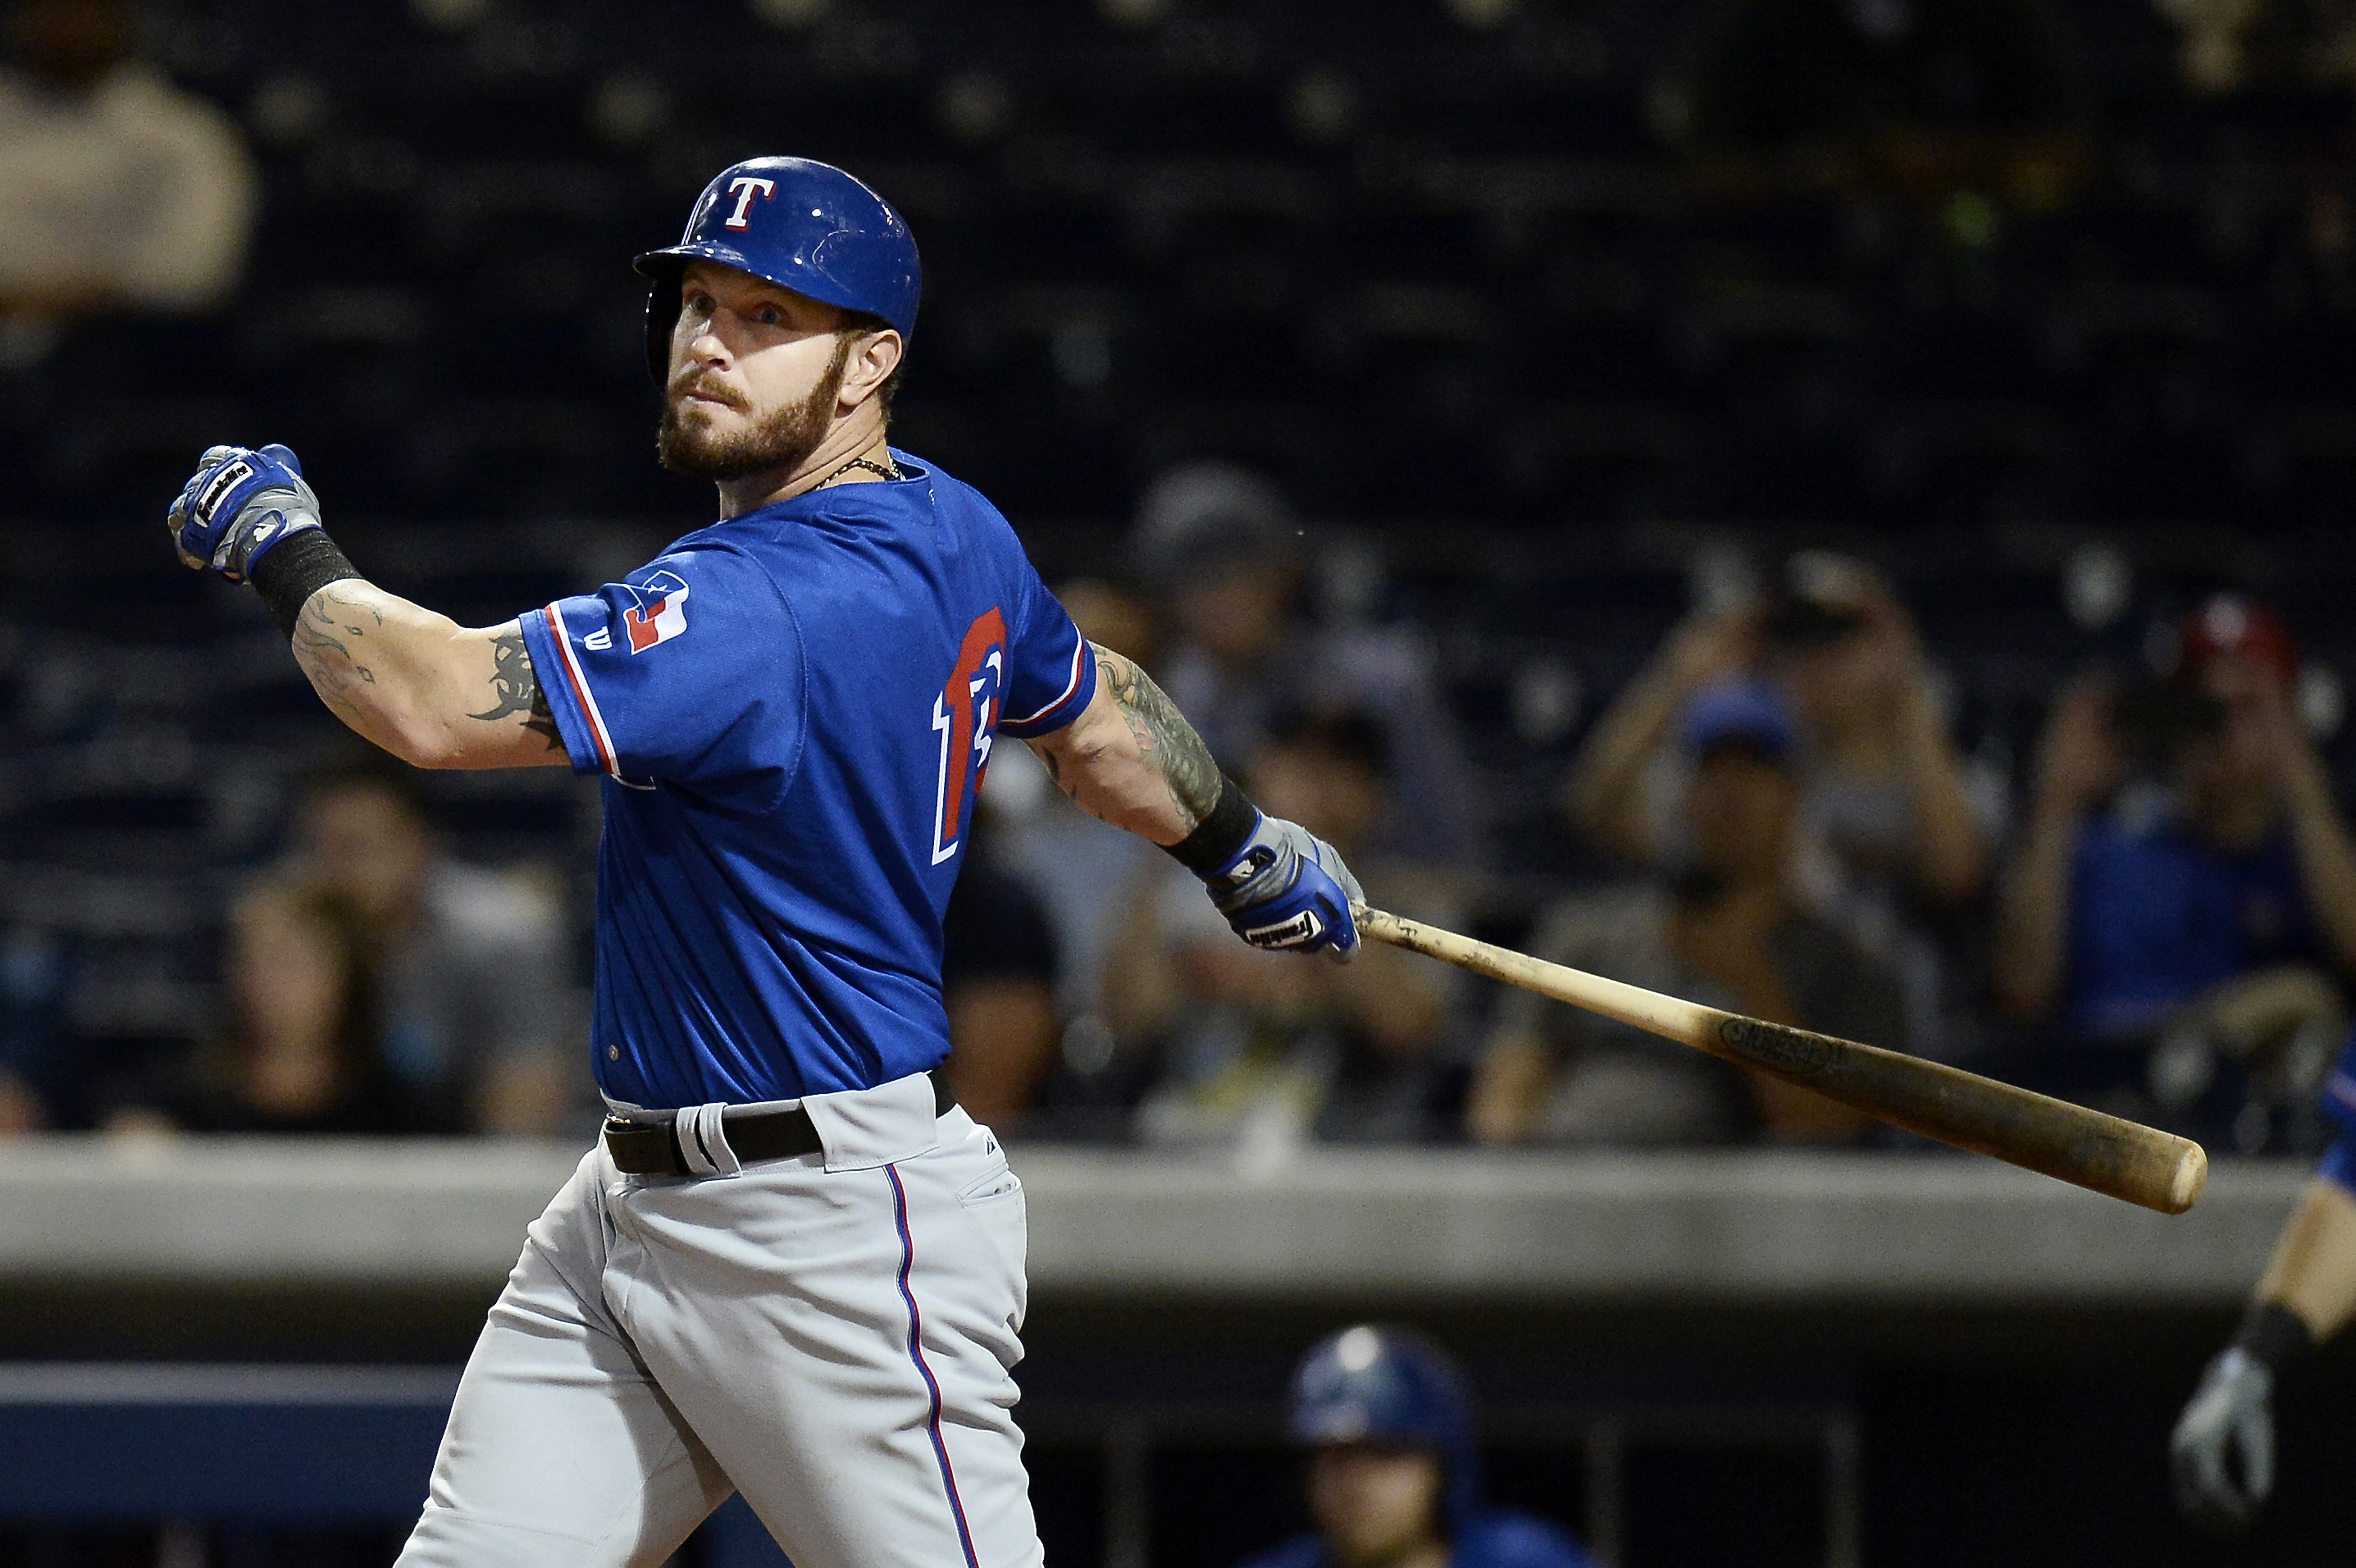 Texas Rangers' Josh Hamilton bats in the seventh inning against the Nashville Sounds on Monday, May 11, 2015, in Nashville, Tenn. Hamilton is playing for the Round Rock Express AAA minor league baseball team before rejoining the Rangers after a rehab stin